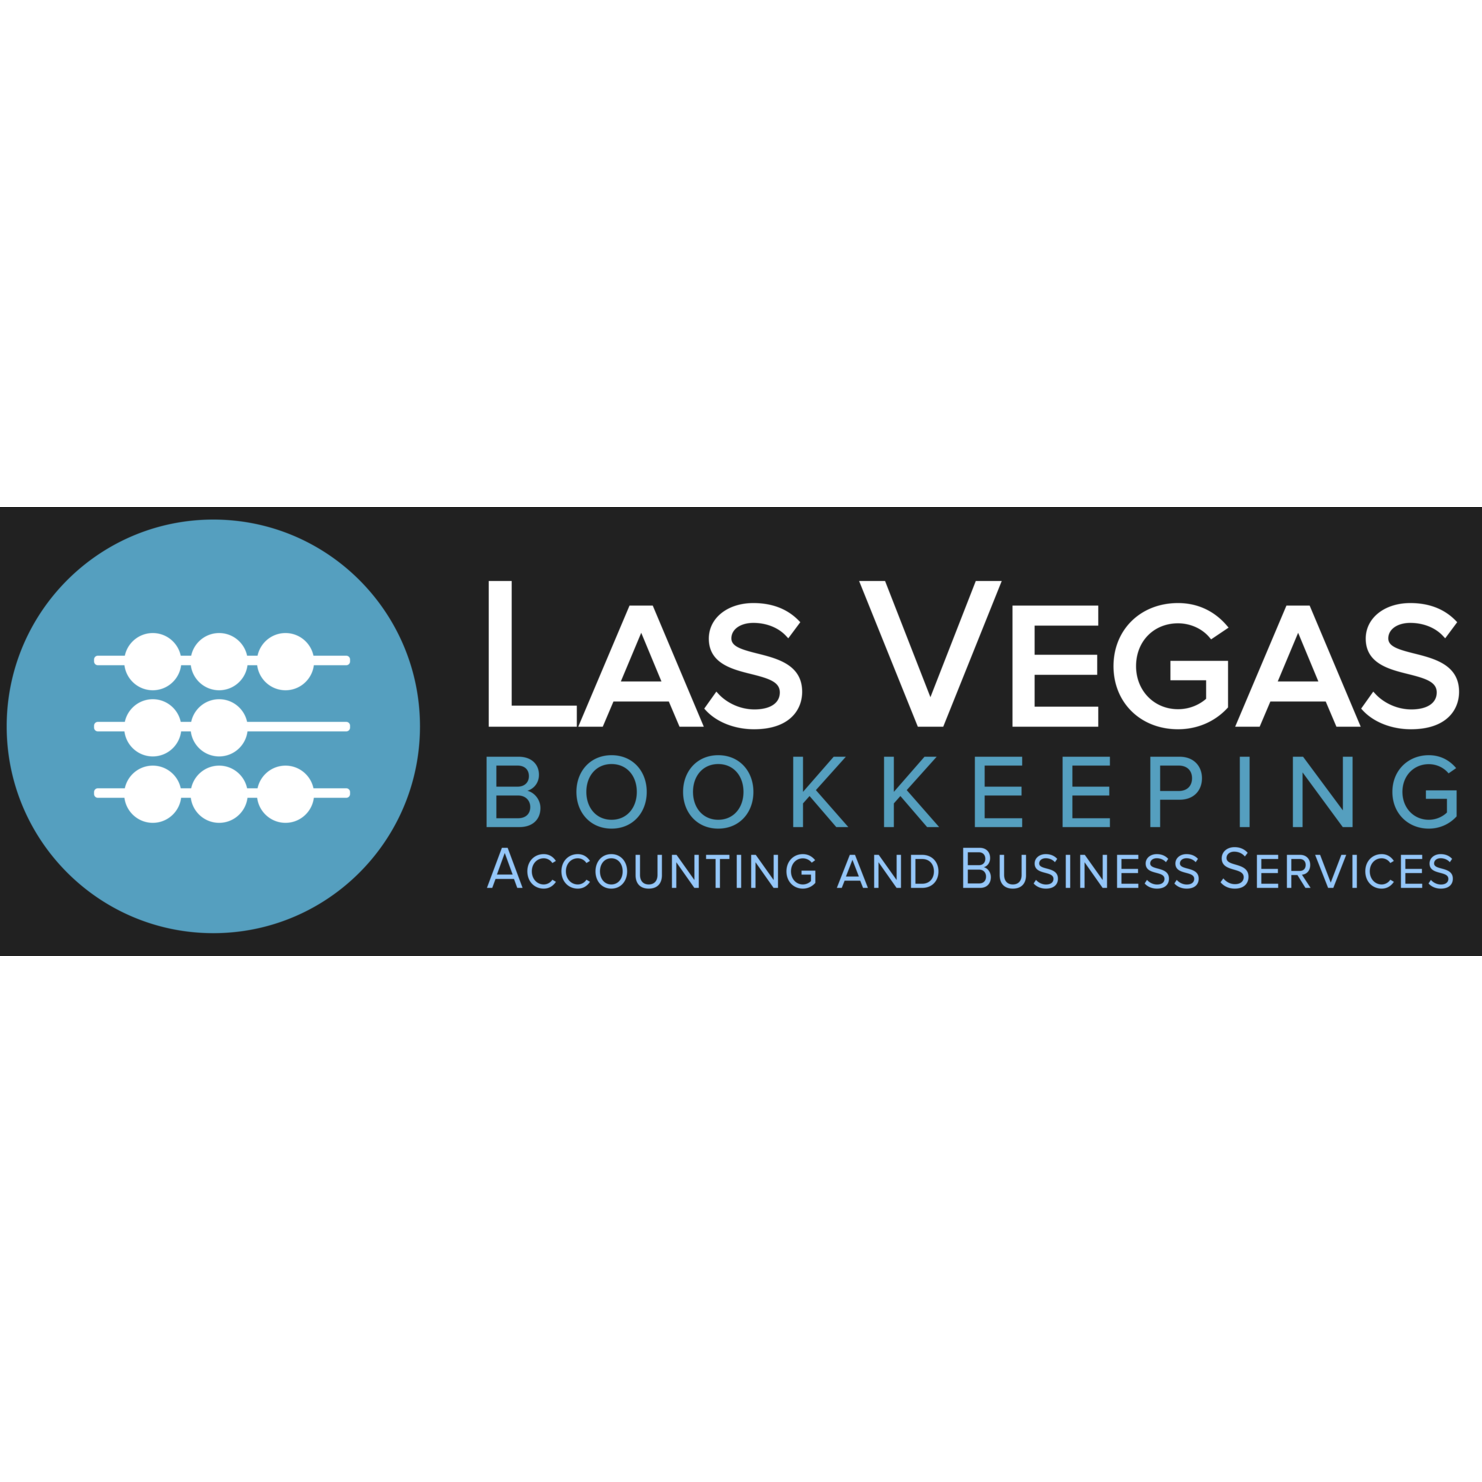 Las Vegas Bookkeeping - Las Vegas, NV 89120 - (702)514-4048 | ShowMeLocal.com